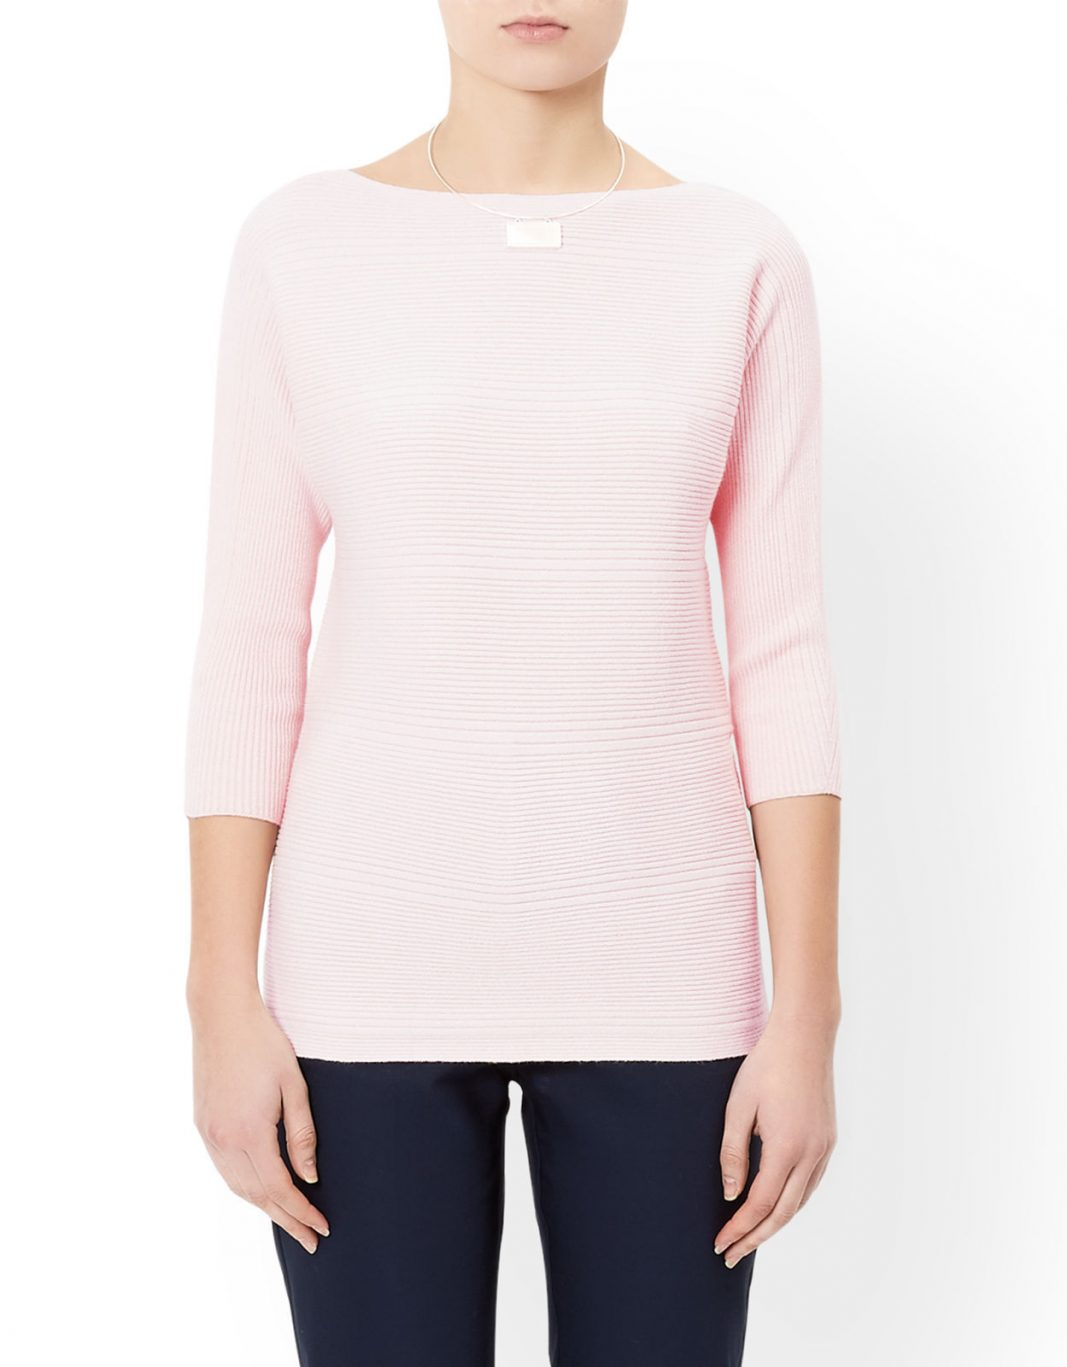 Second-hand Clothing - Women, Tops & Shirts, Jumpers & Cardigans